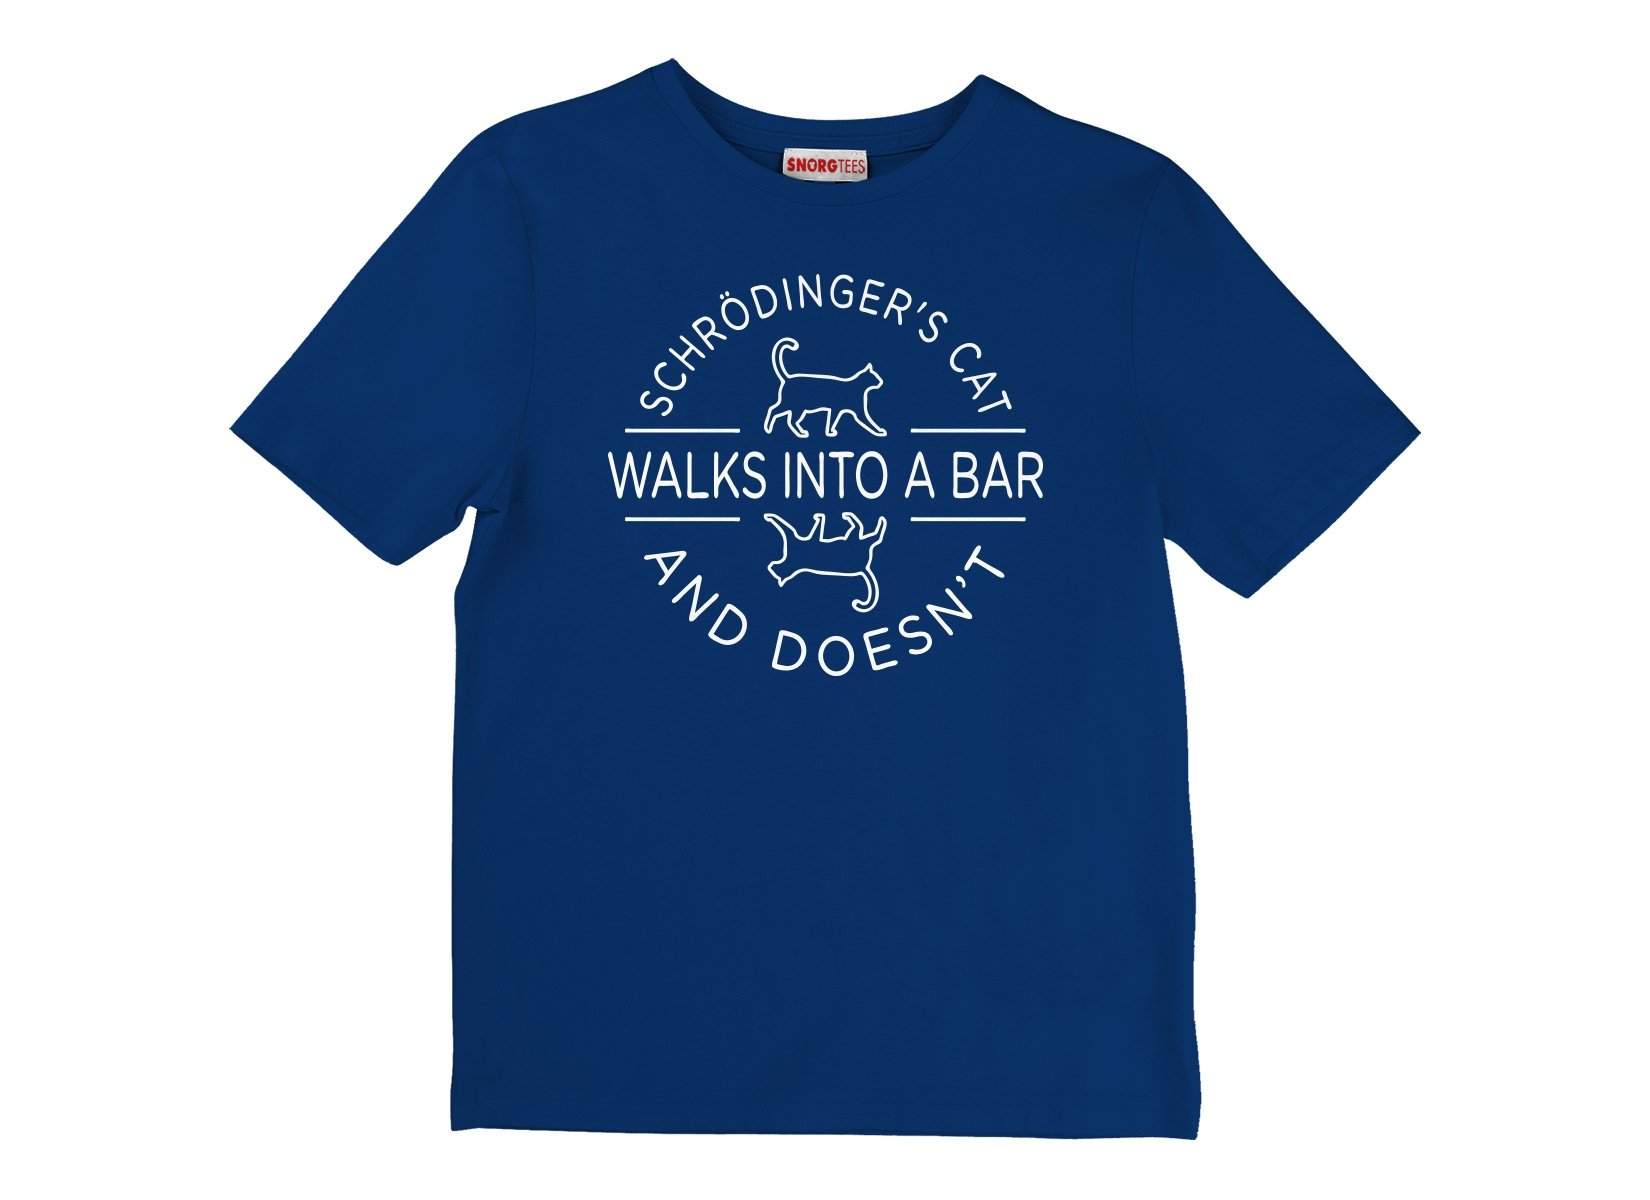 Schrodinger's Cat Walks Into A Bar on Kids T-Shirt